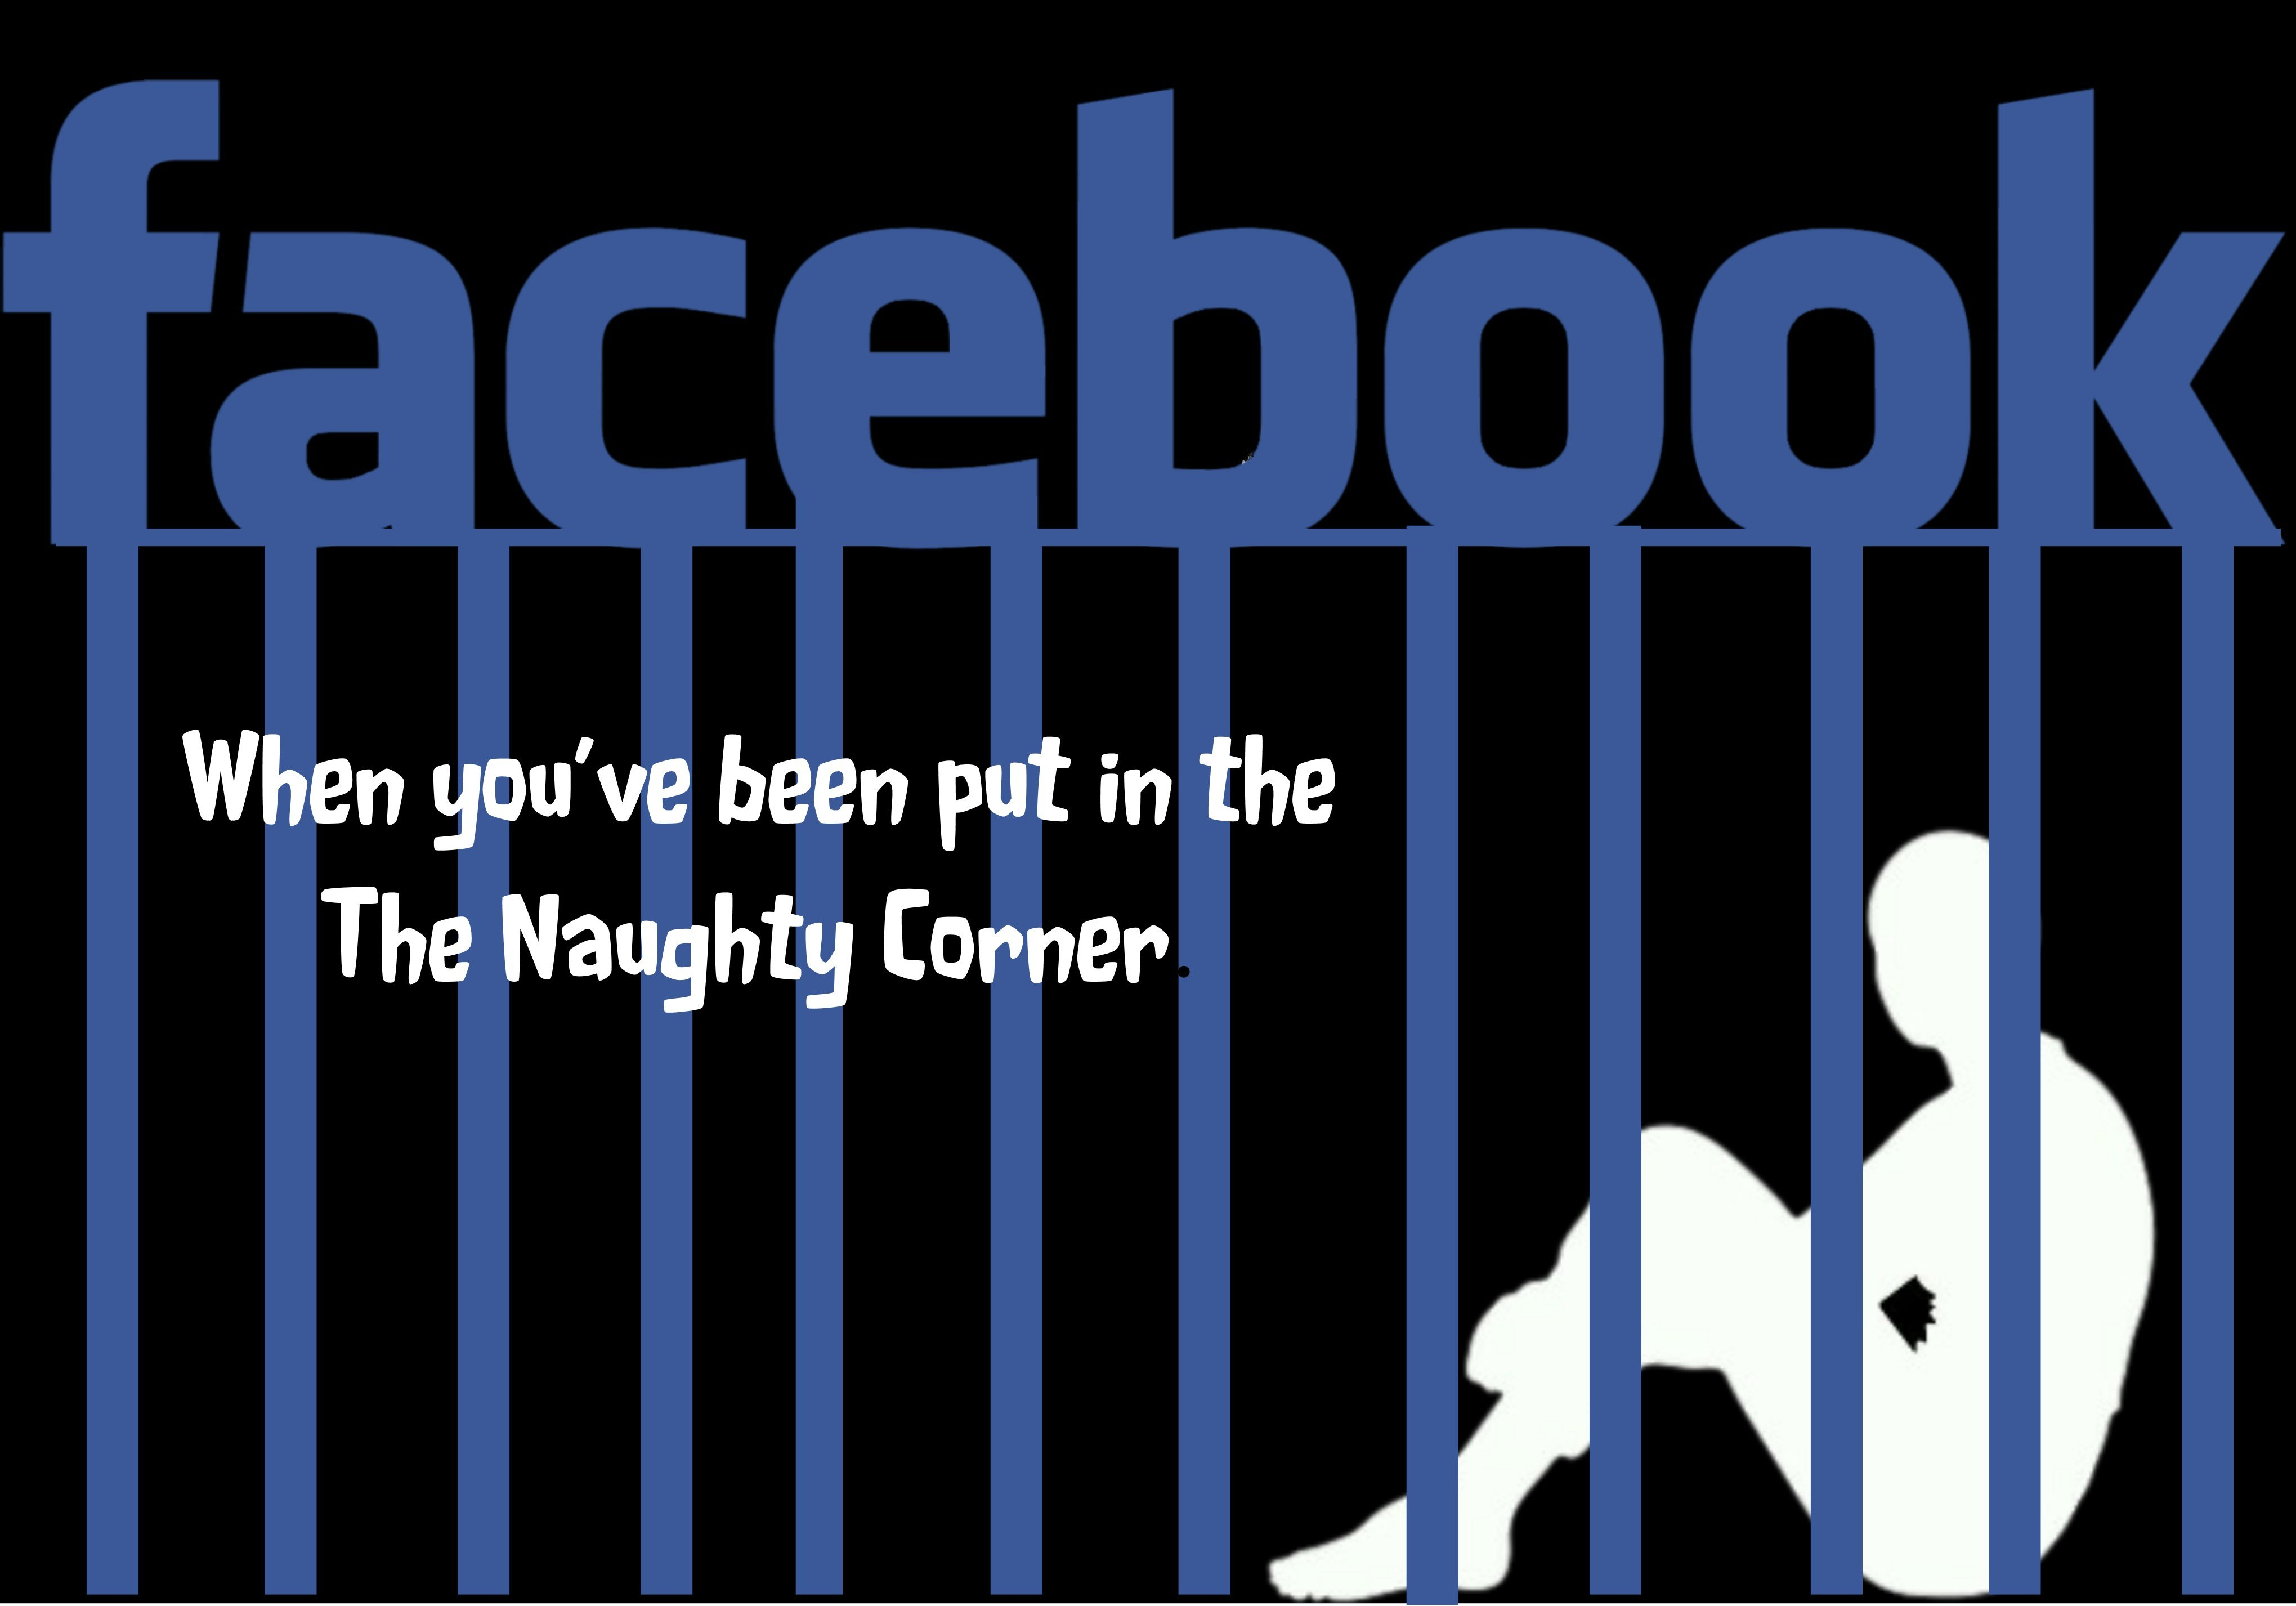 I got sent to Facebook jail. Be careful, you could end up there too.